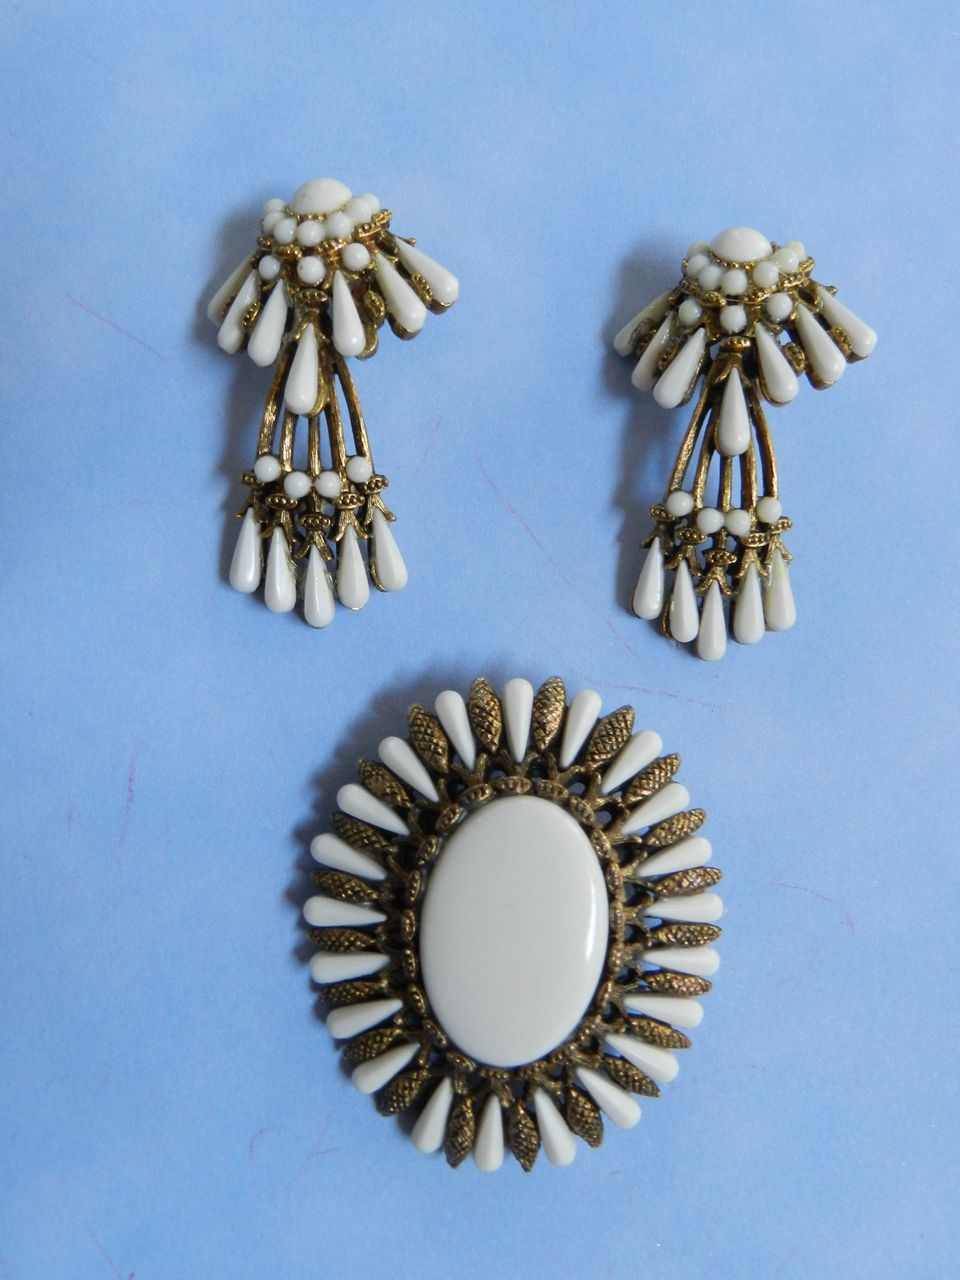 Rare Hard to Find Har Vintage Brooch and Hanging earrings